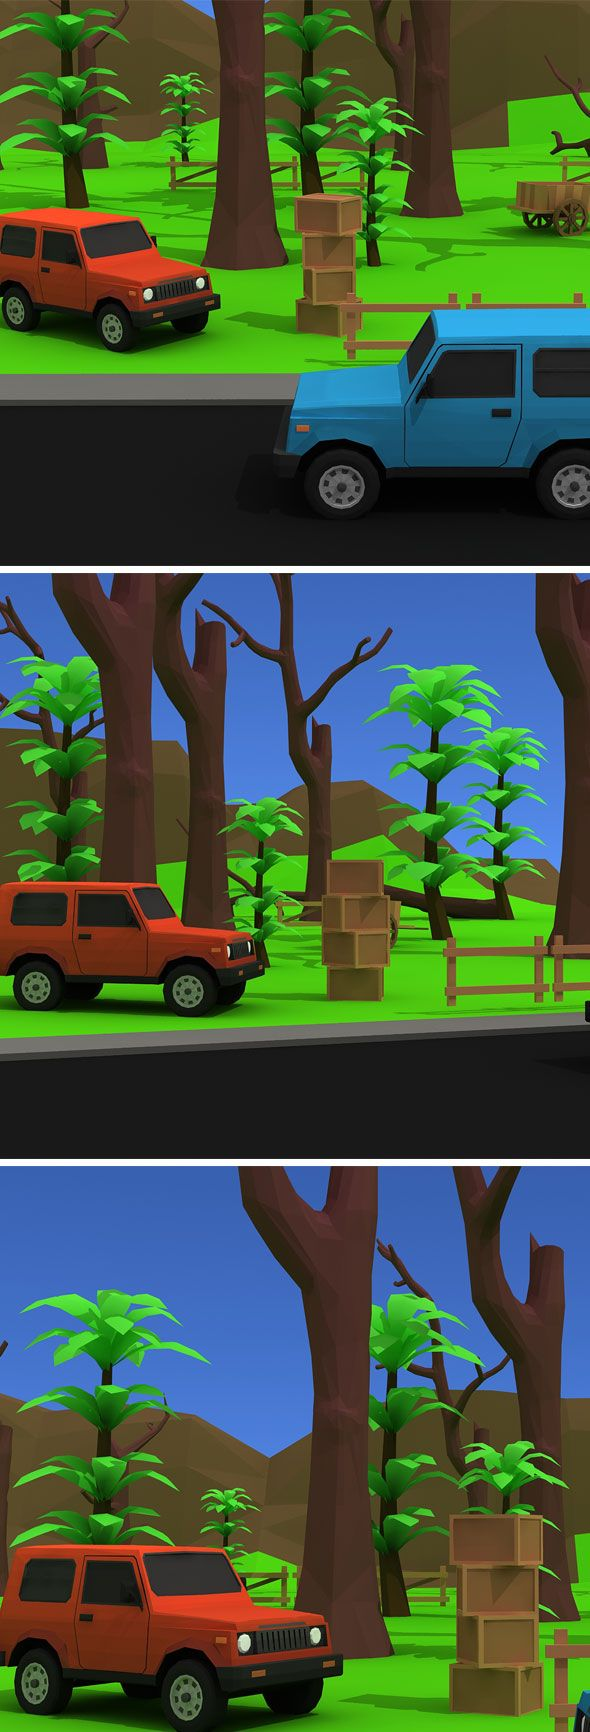 Jungle Way Low Poly Model. Fully customizable low-poly 3D model. #3D #3DModel #3DDesign #Lowpoly #3dcomic #VR #AR #art #car #cartoon #creative #environment #hill #jeep #jungle #product #road #sky #tree #vehicle #way